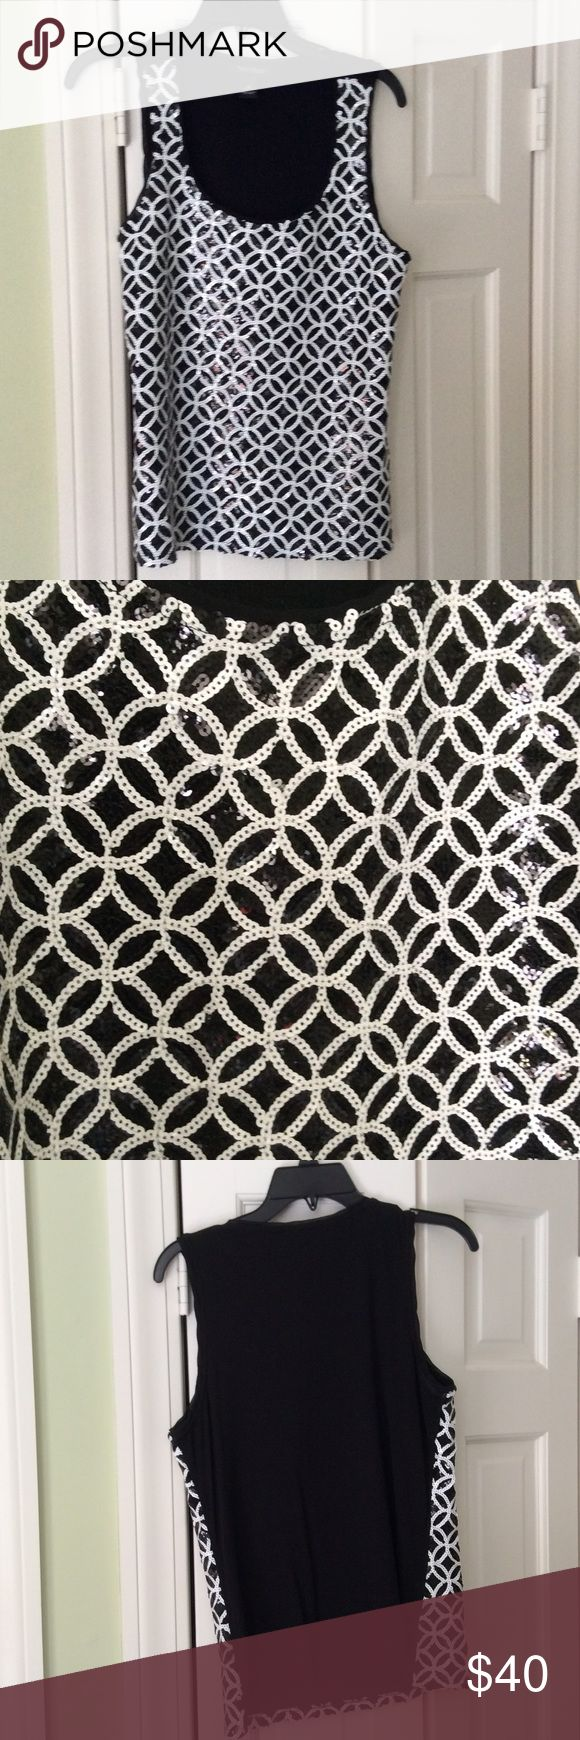 White House Black Market sequined top This black and white sequenced top looks great both for a casual look with jeans or a dressy look with a skirt or slacks. The back is a solid black stretchy fabric. White House Black Market Tops